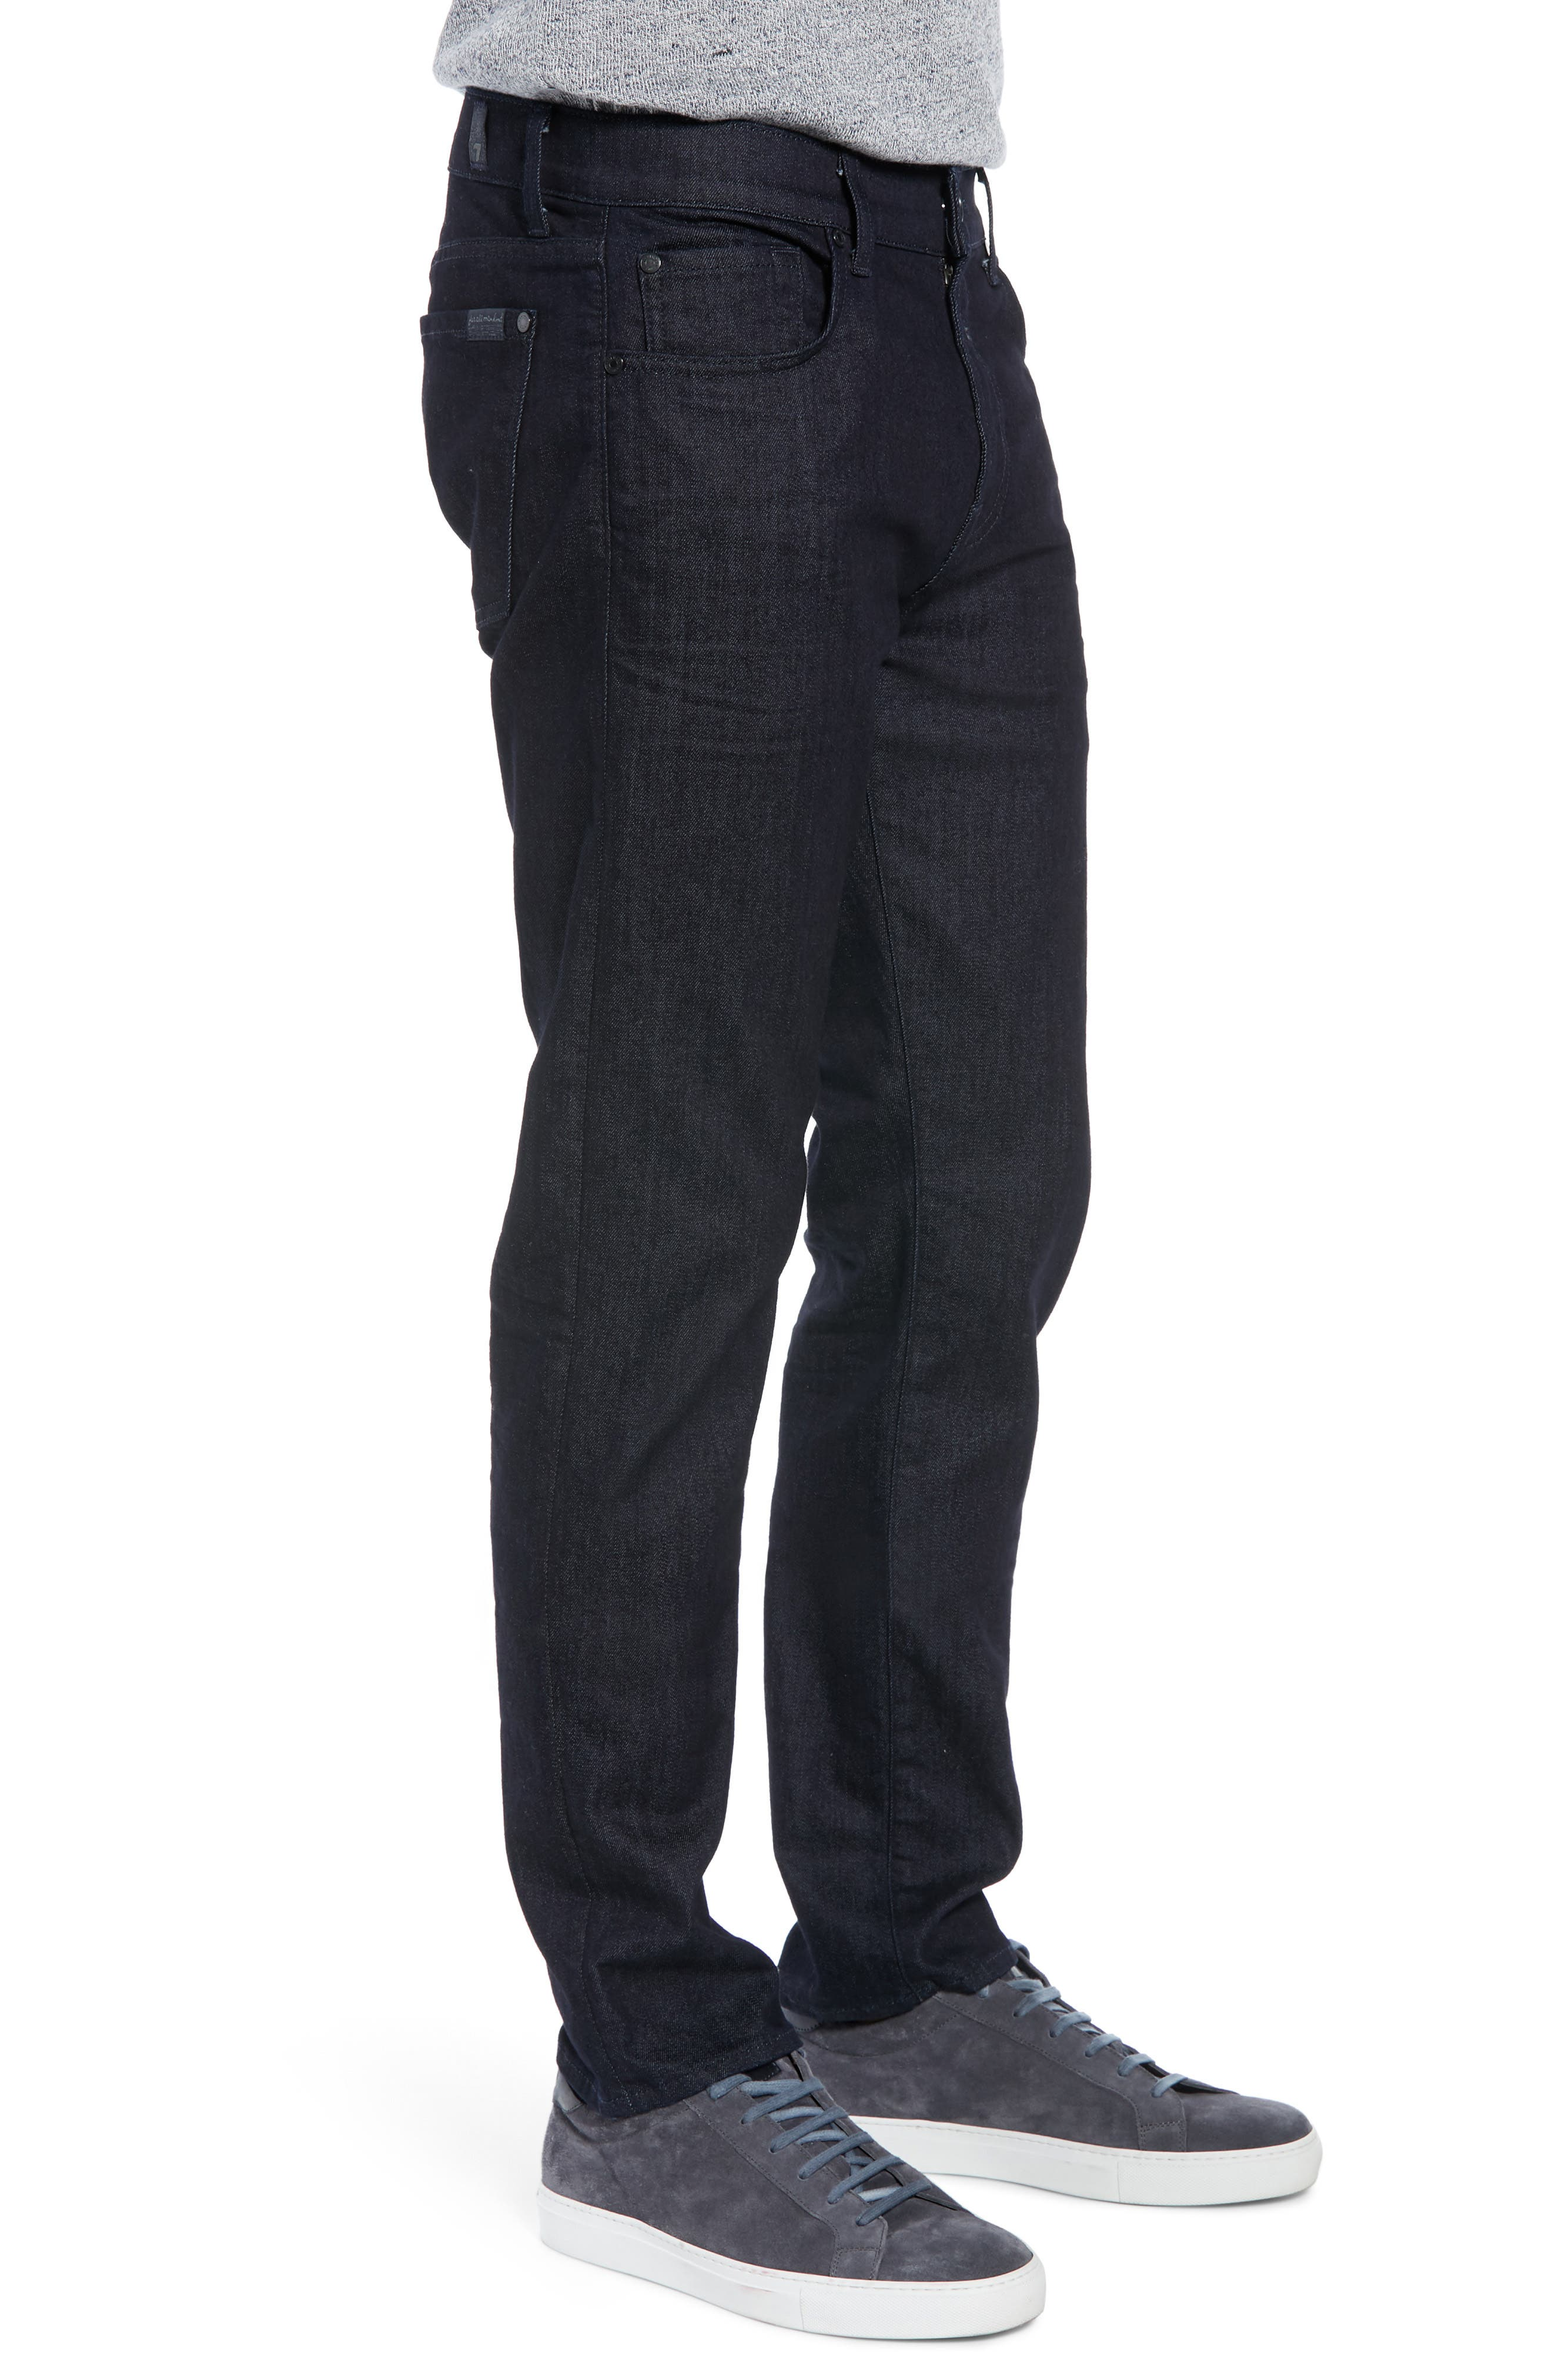 7 FOR ALL MANKIND<SUP>®</SUP>, Adrien Slim Fit Jeans, Alternate thumbnail 4, color, EXECUTIVE